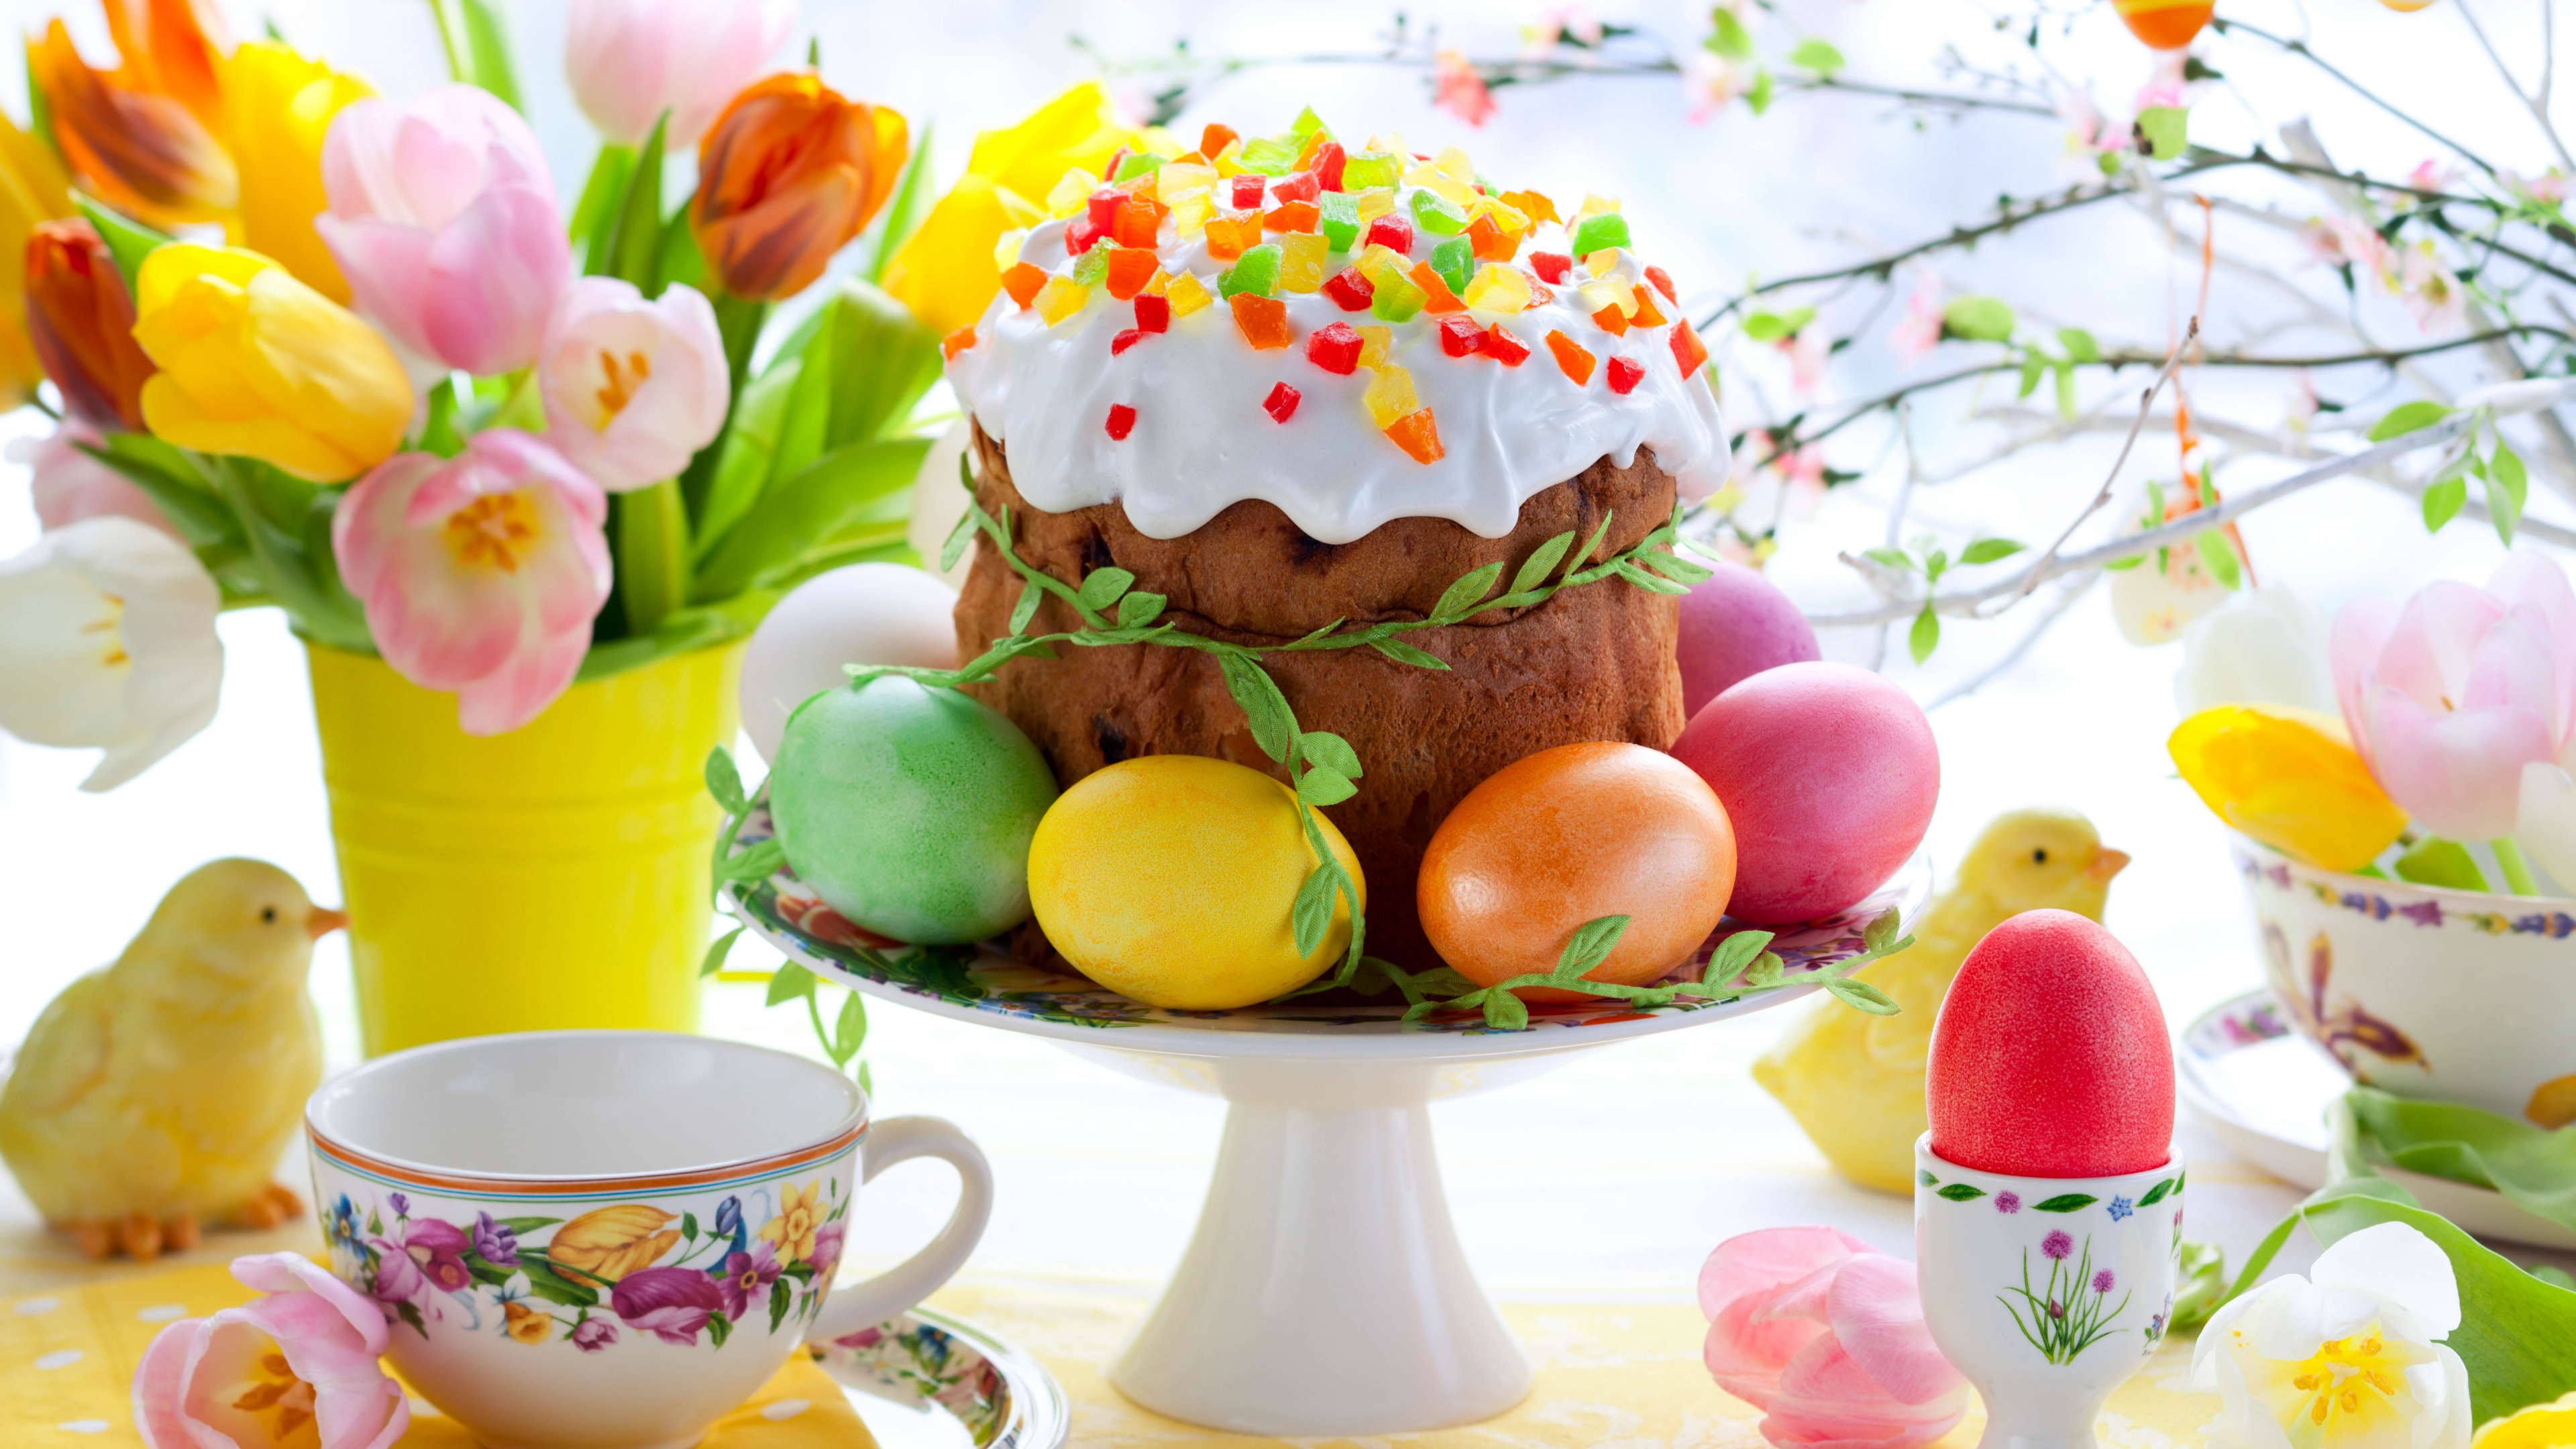 easter_egg_table_layout_holiday_78240_3840x2160